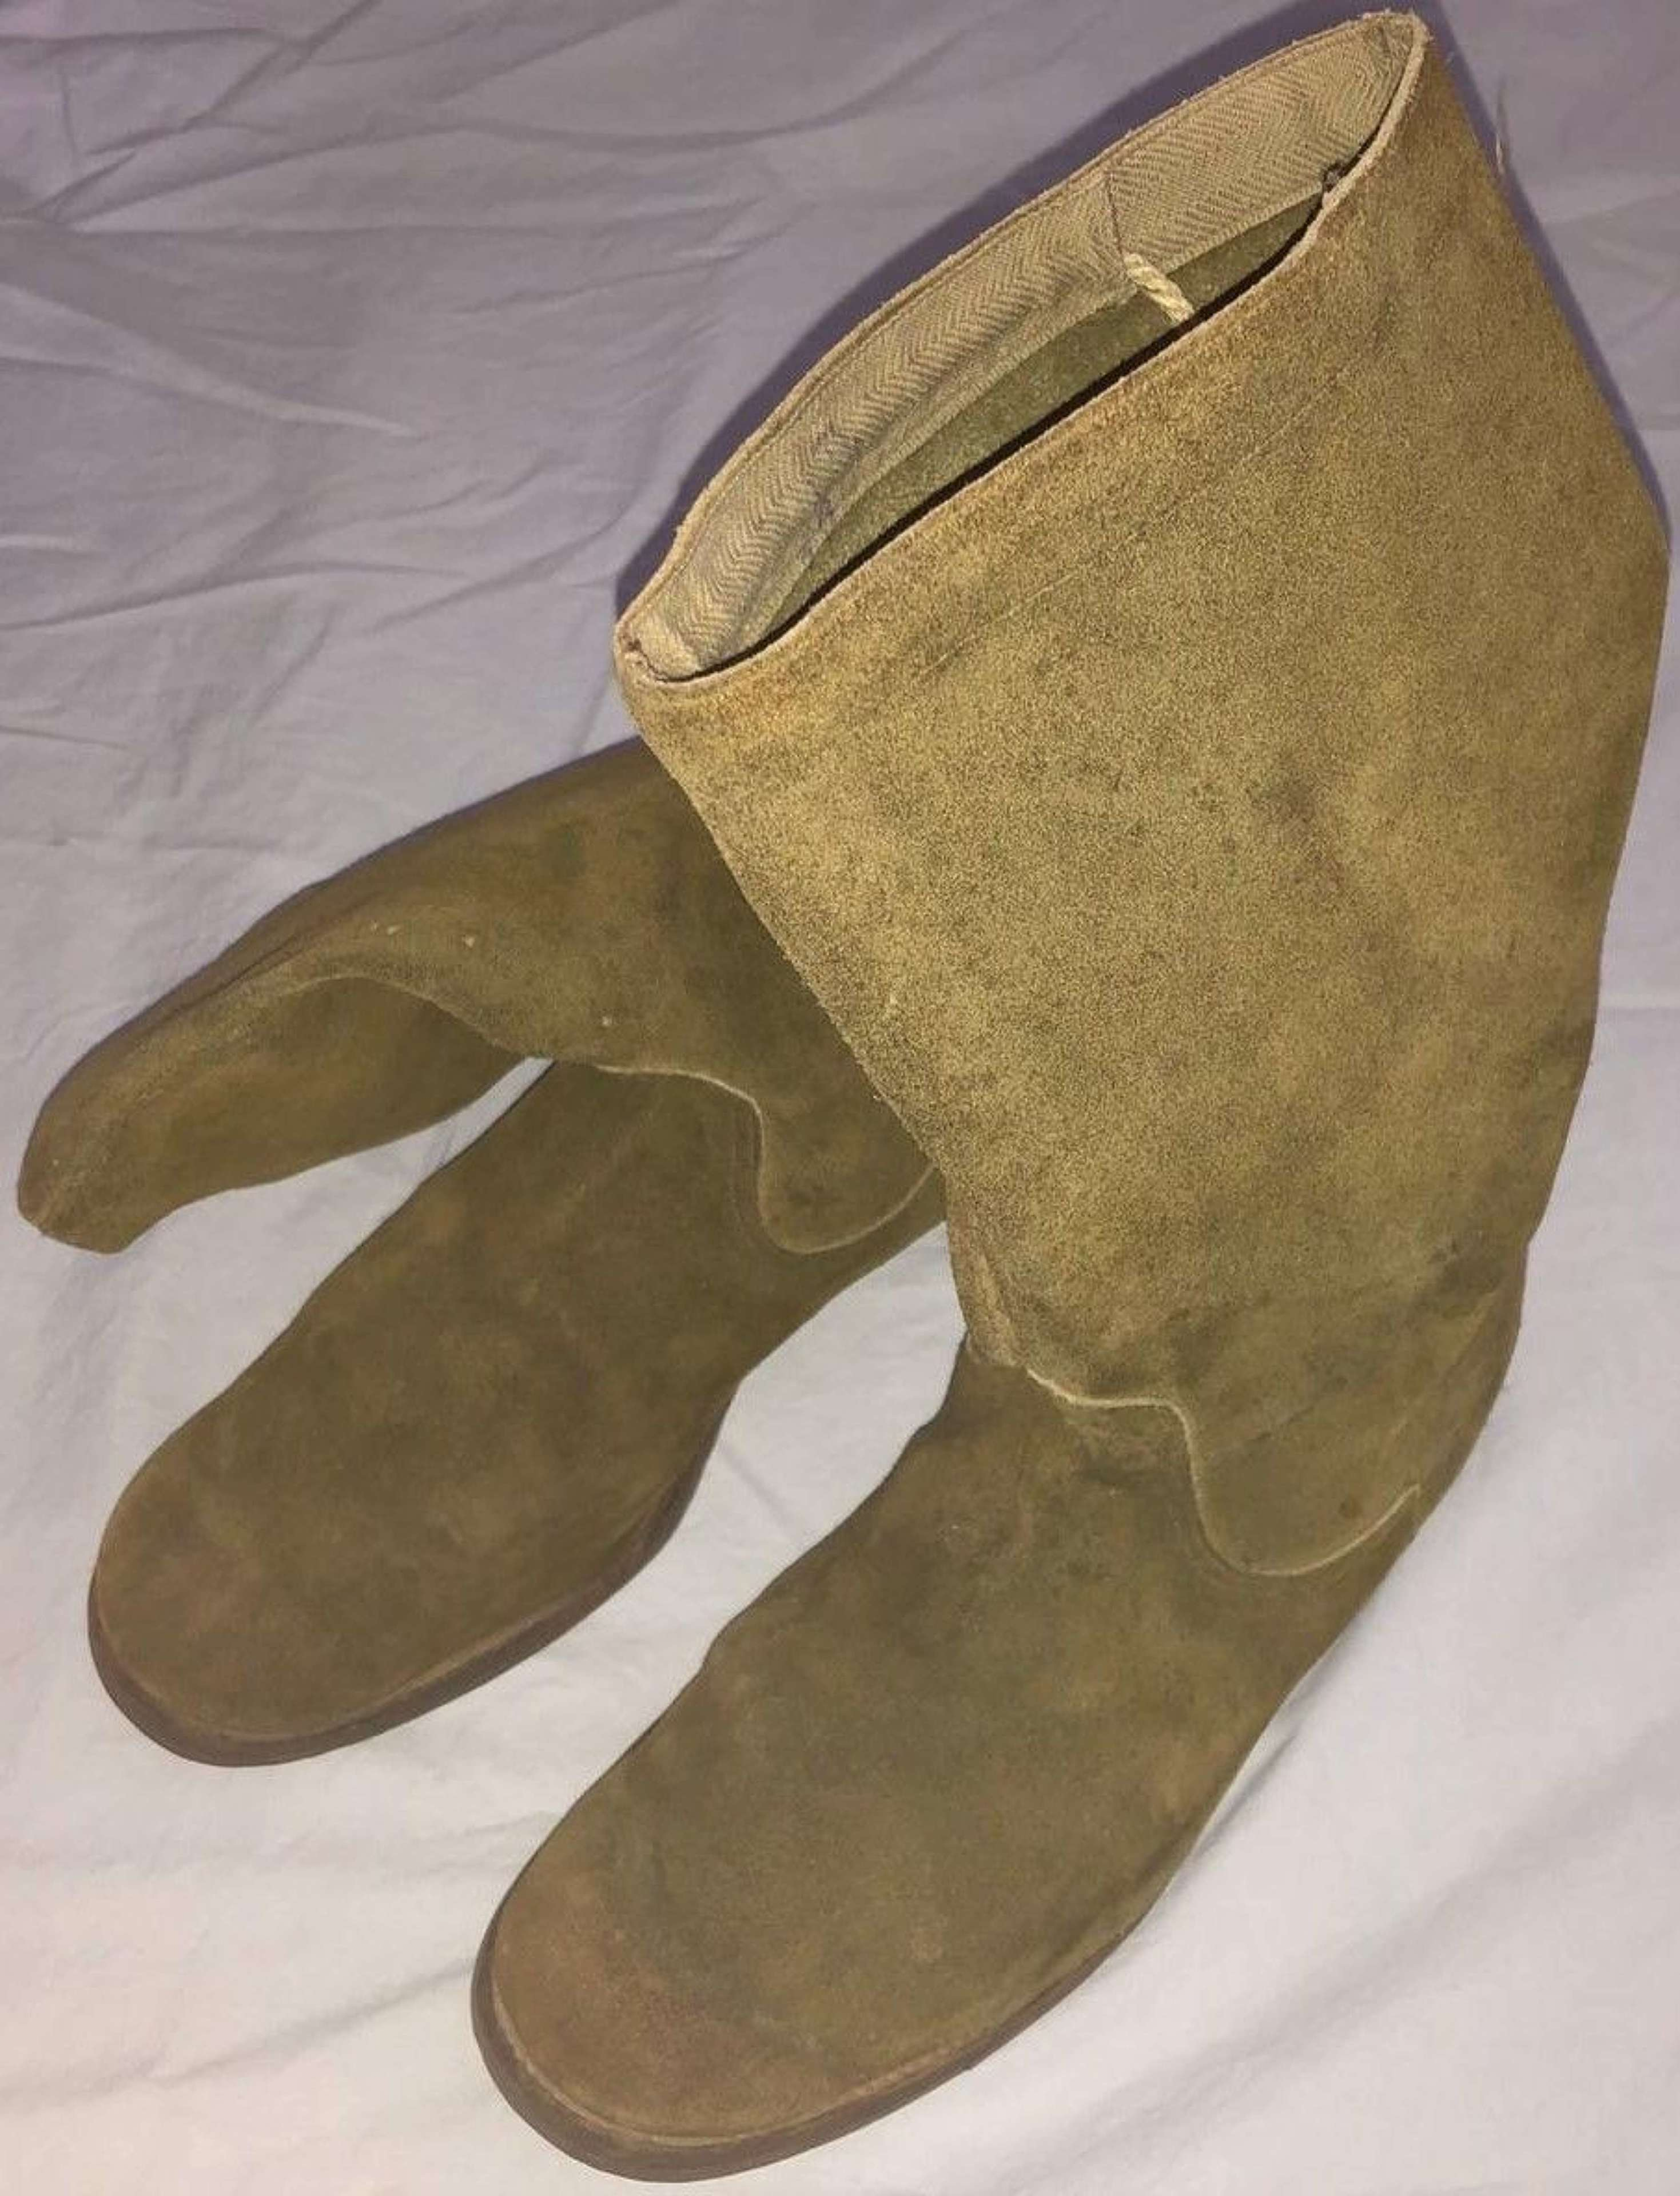 A PAIR OF WWII RAF / AM ISSUE MOSSIE BOOTS NAMED TO A BOF B PILOT